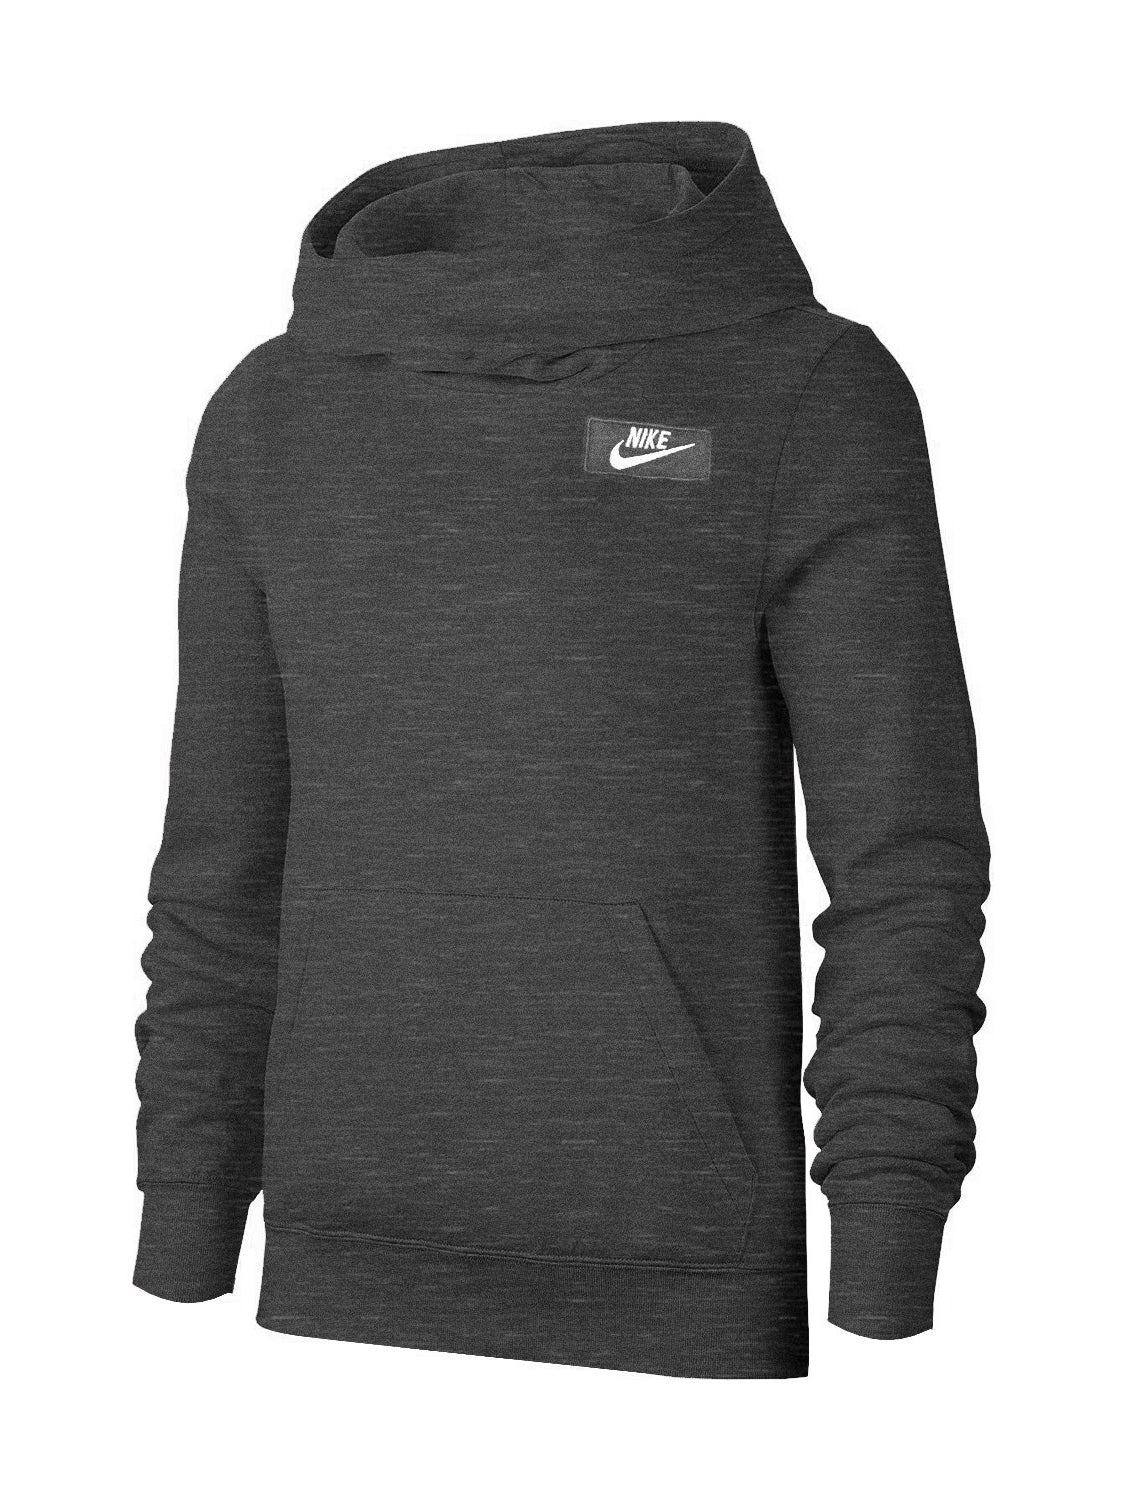 NK Fleece Pullover Hoodie For Men-Dark Grey Melange With White Embroidery-NA12660